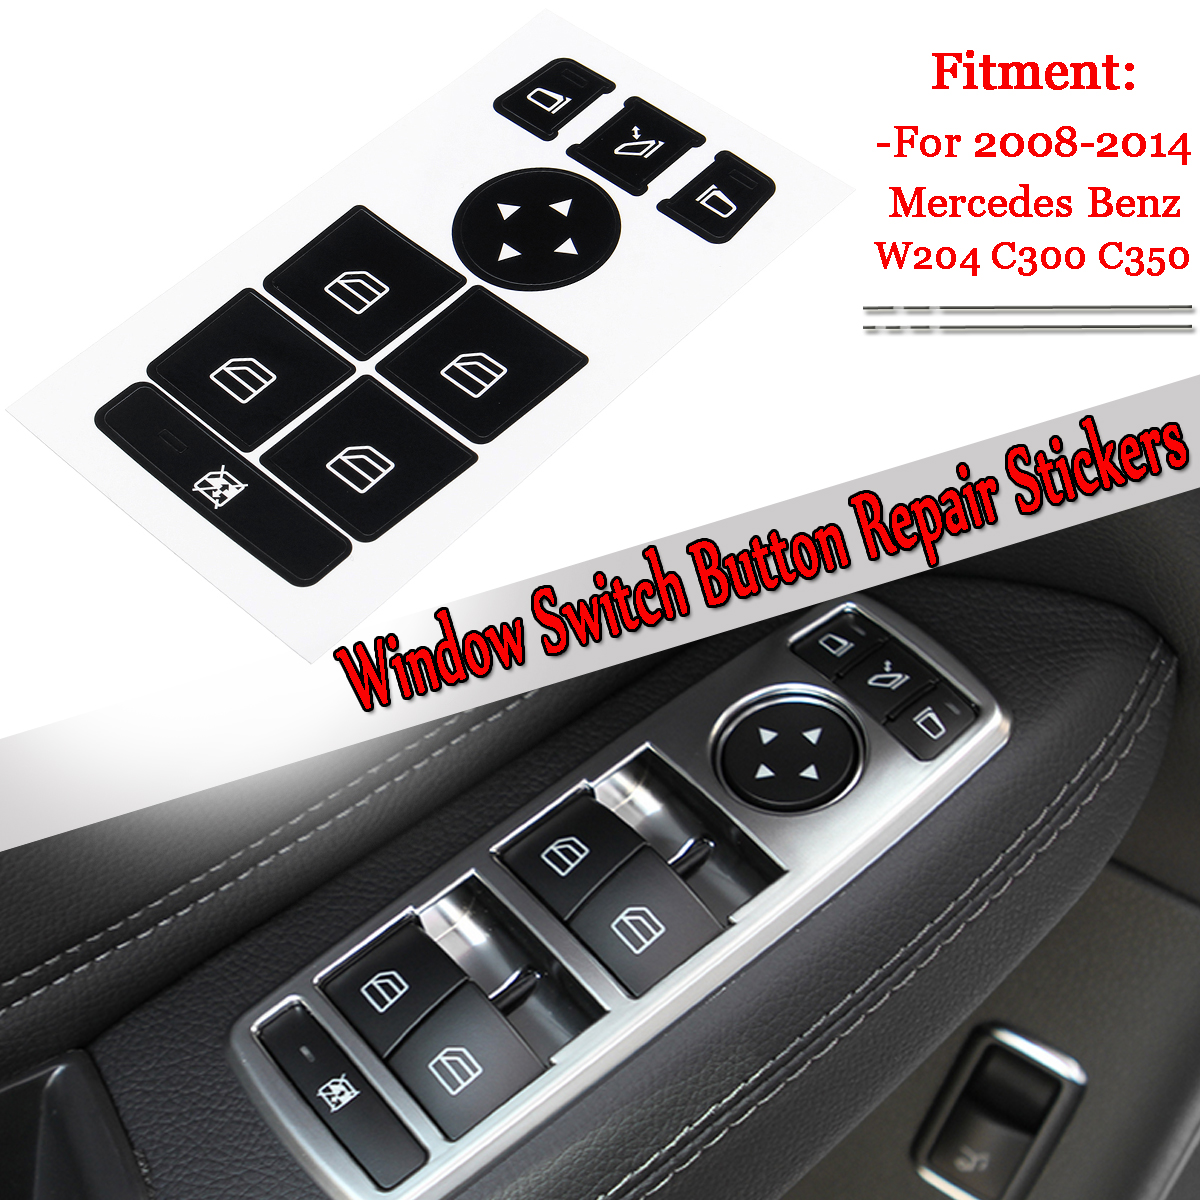 1 pc Car Window Switch Button Repair Stickers Ruined Faded Center Controls Kit For <font><b>Mercedes</b></font> For Benz 2008-2014 W204 <font><b>C300</b></font> C350 image